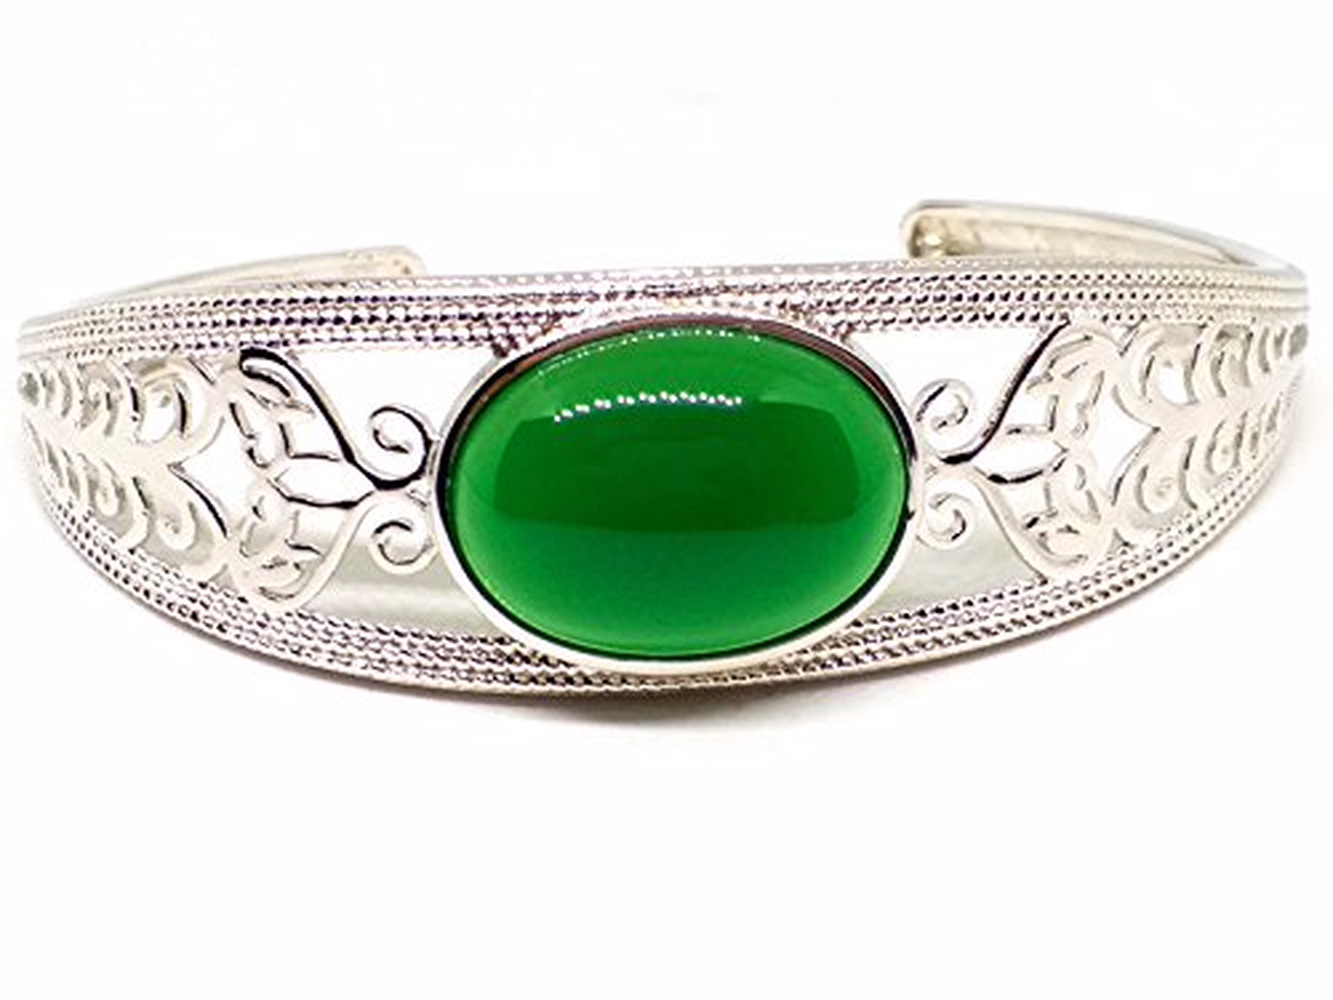 Koraba Fine JewelrySterling S925 Silver Bangle Green Jade Ellipse Bracelet Free ShippingKoraba Fine JewelrySterling S925 Silver Bangle Green Jade Ellipse Bracelet Free Shipping